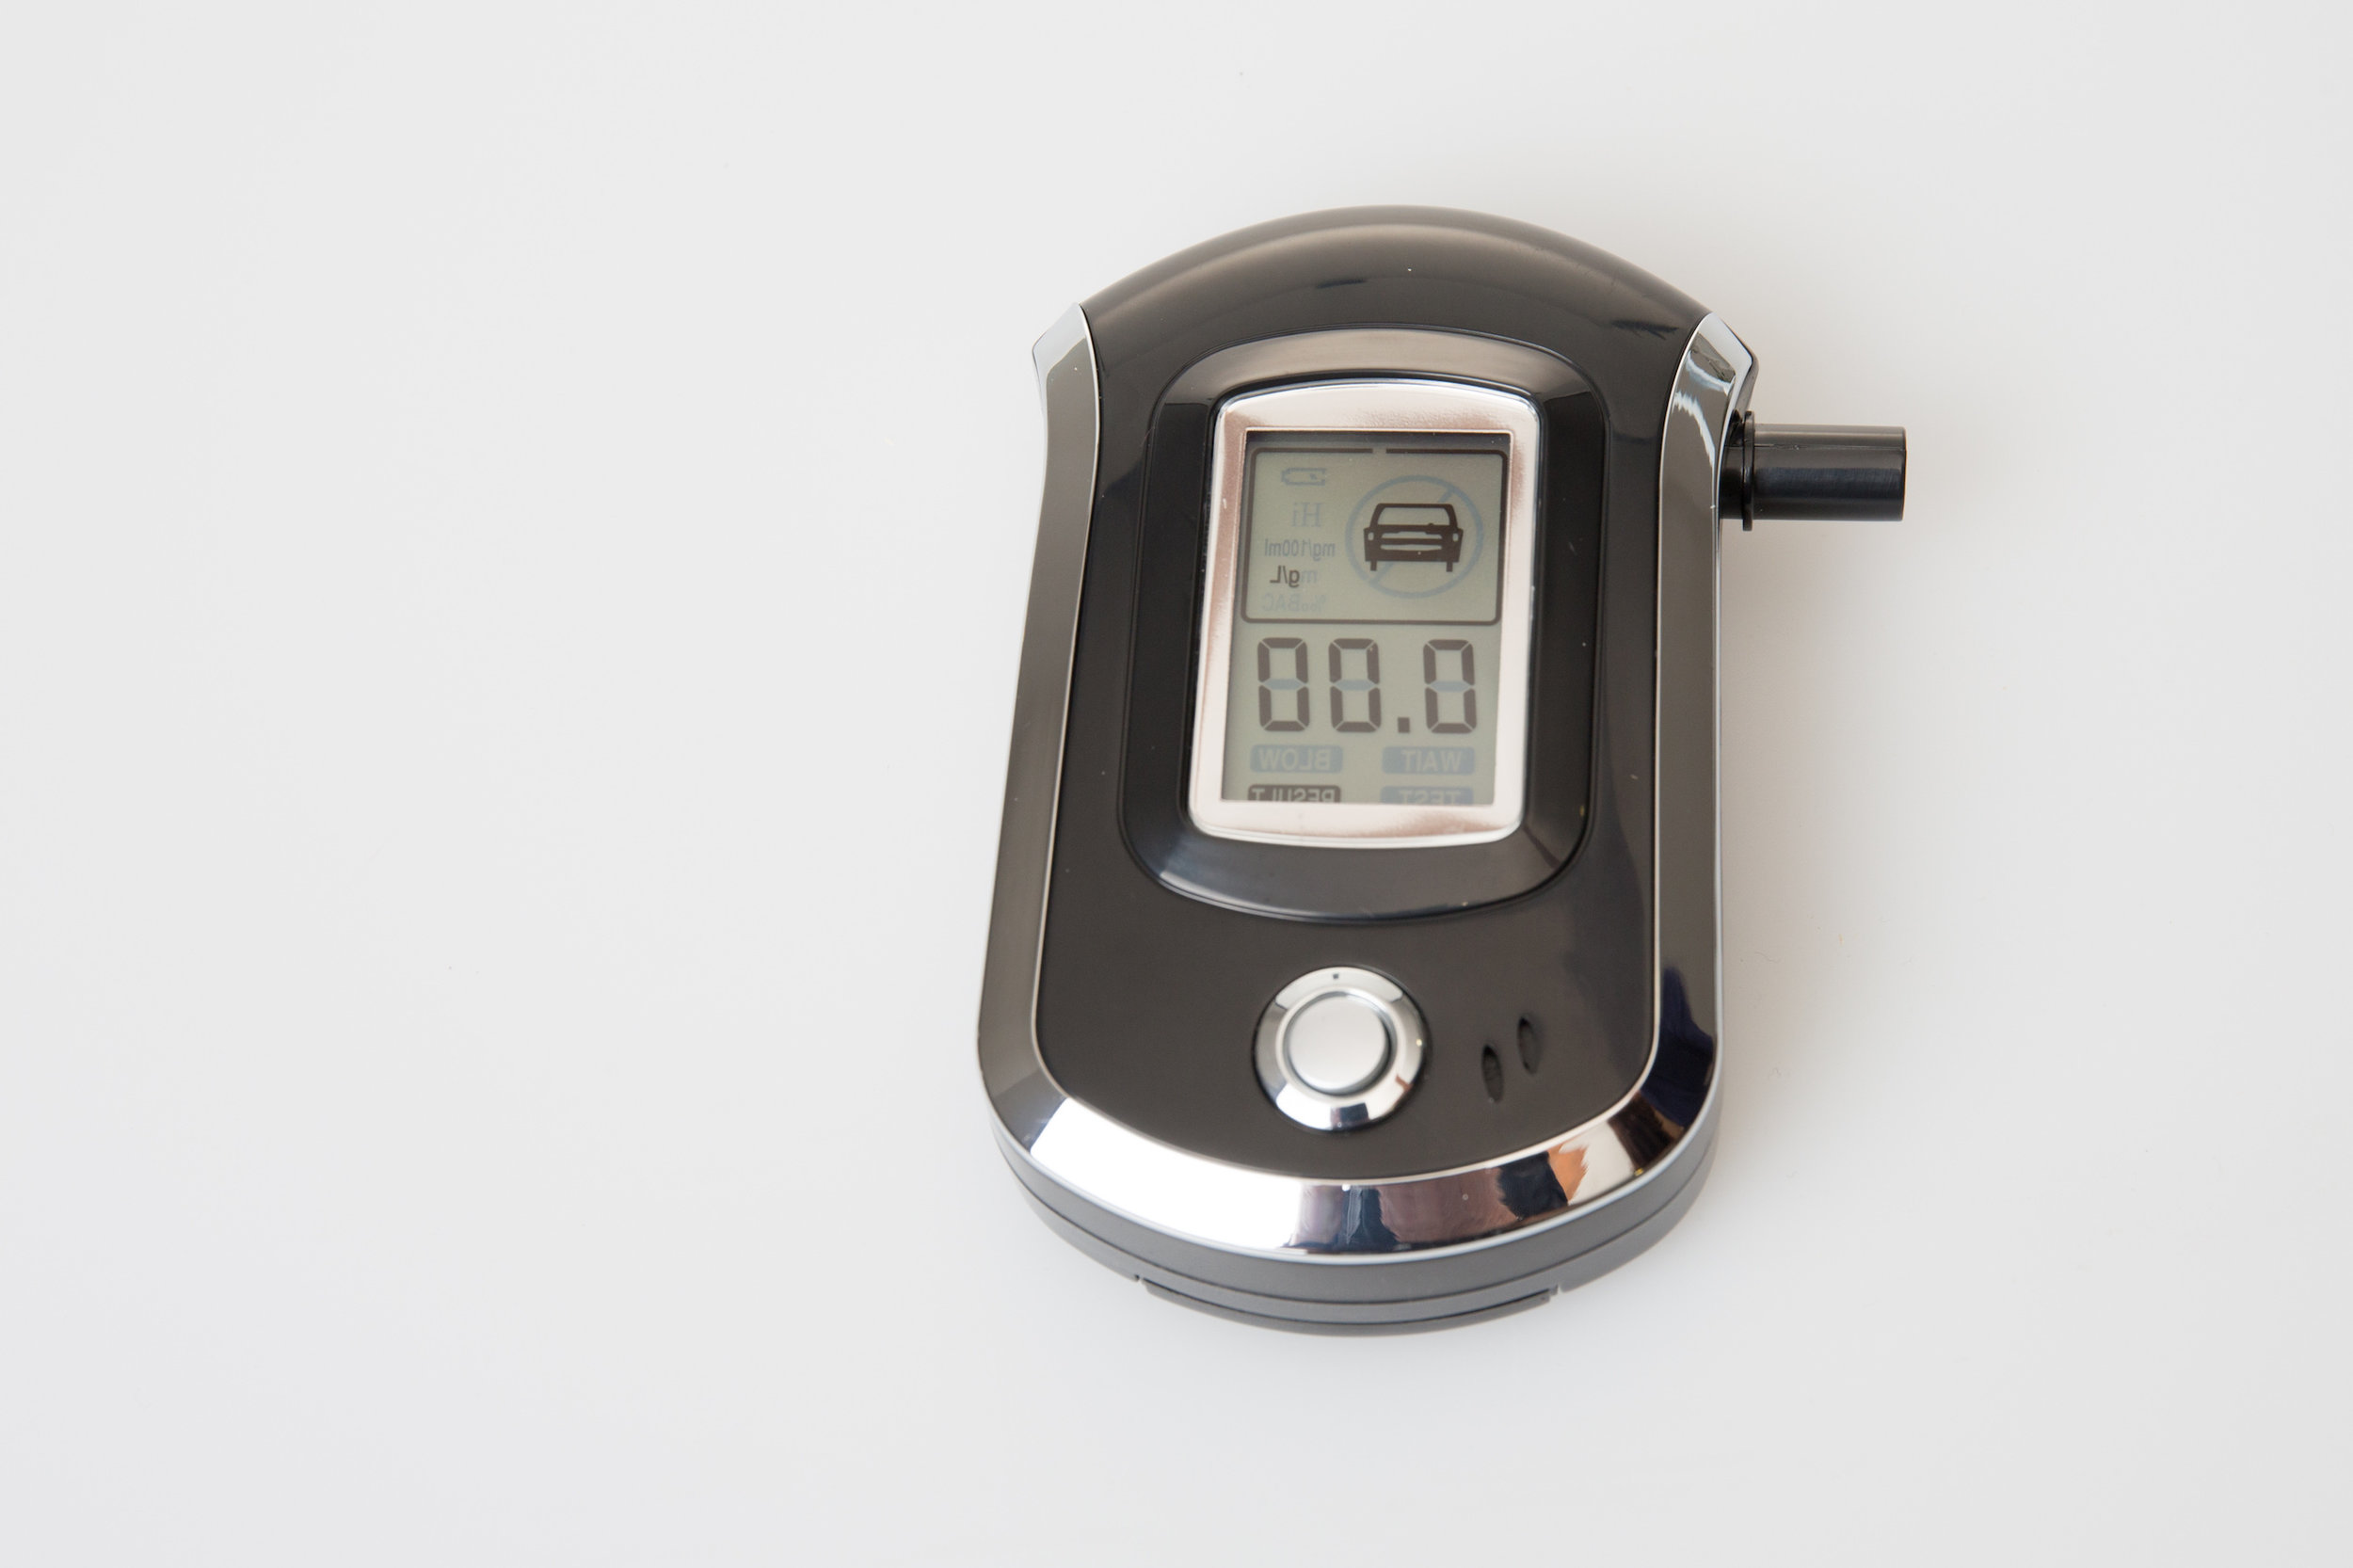 This Device Blows - IID Requirement for DUI |The Law Offices of Bryan R. Kazarian - Los Angeles County Criminal Defense Attorneys - property, juvenile, petty theft, DUI, misdemeanor, and felony Criminal Law